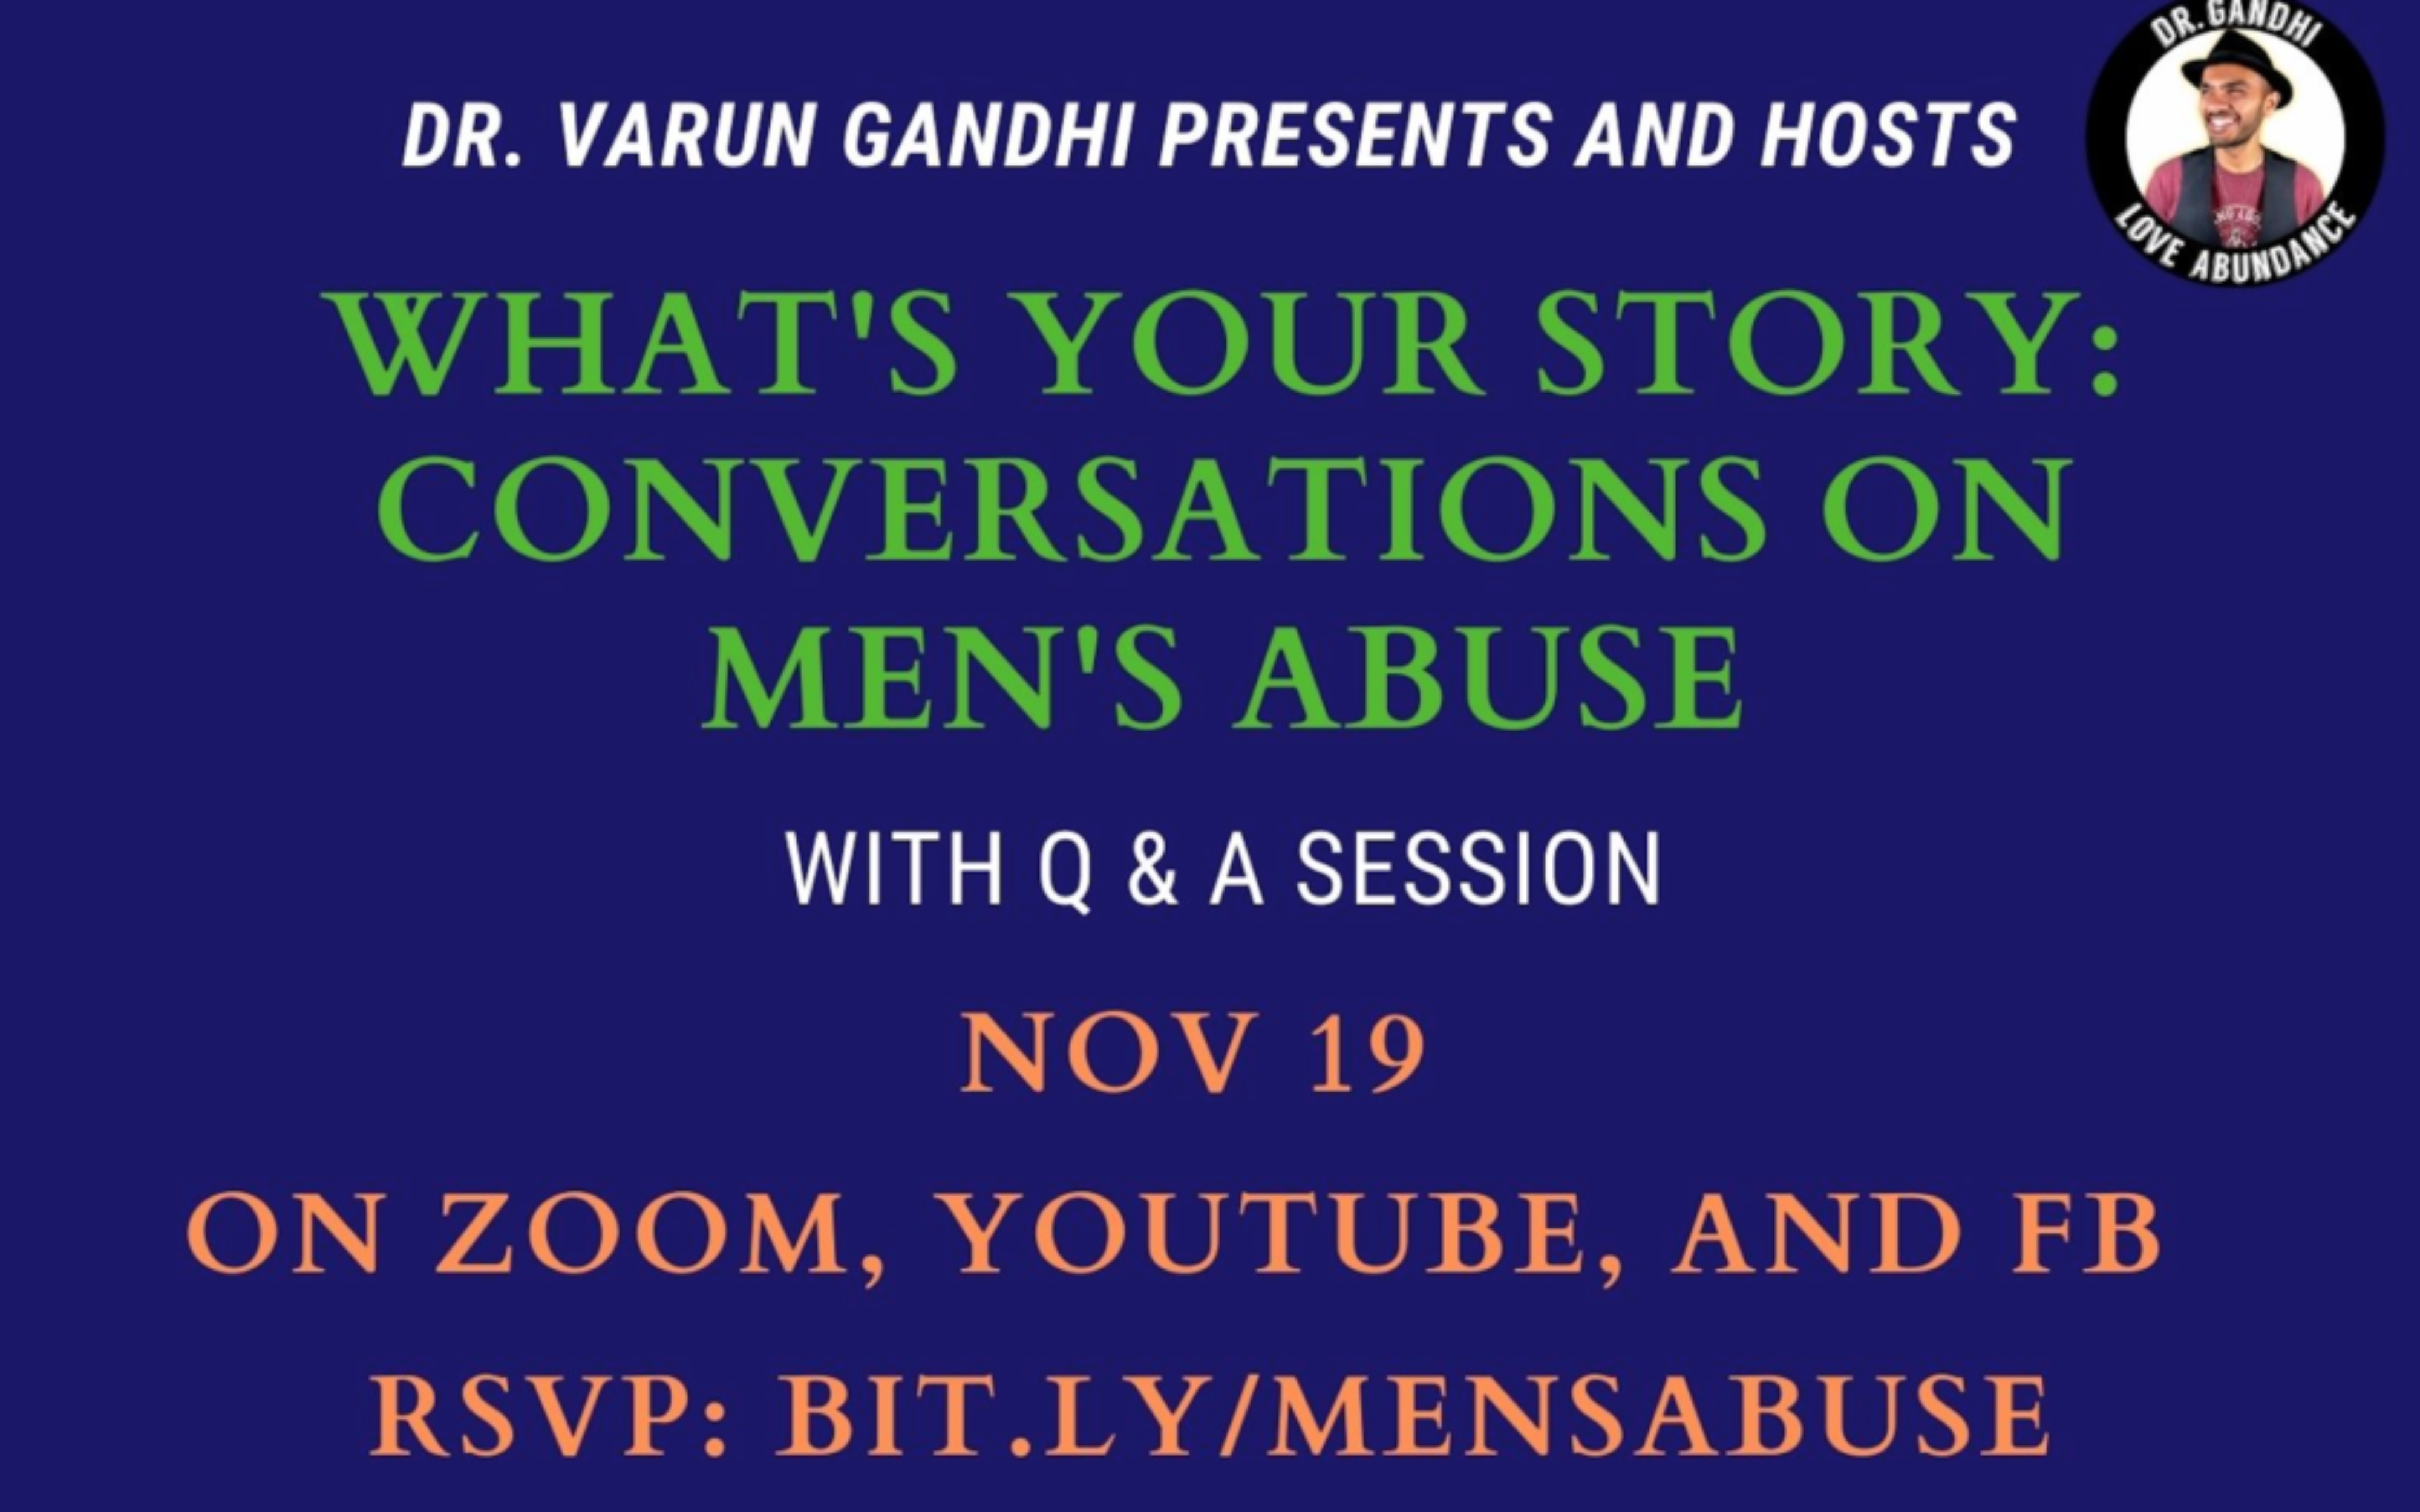 What's Your Story: Conversations on Men's Abuse